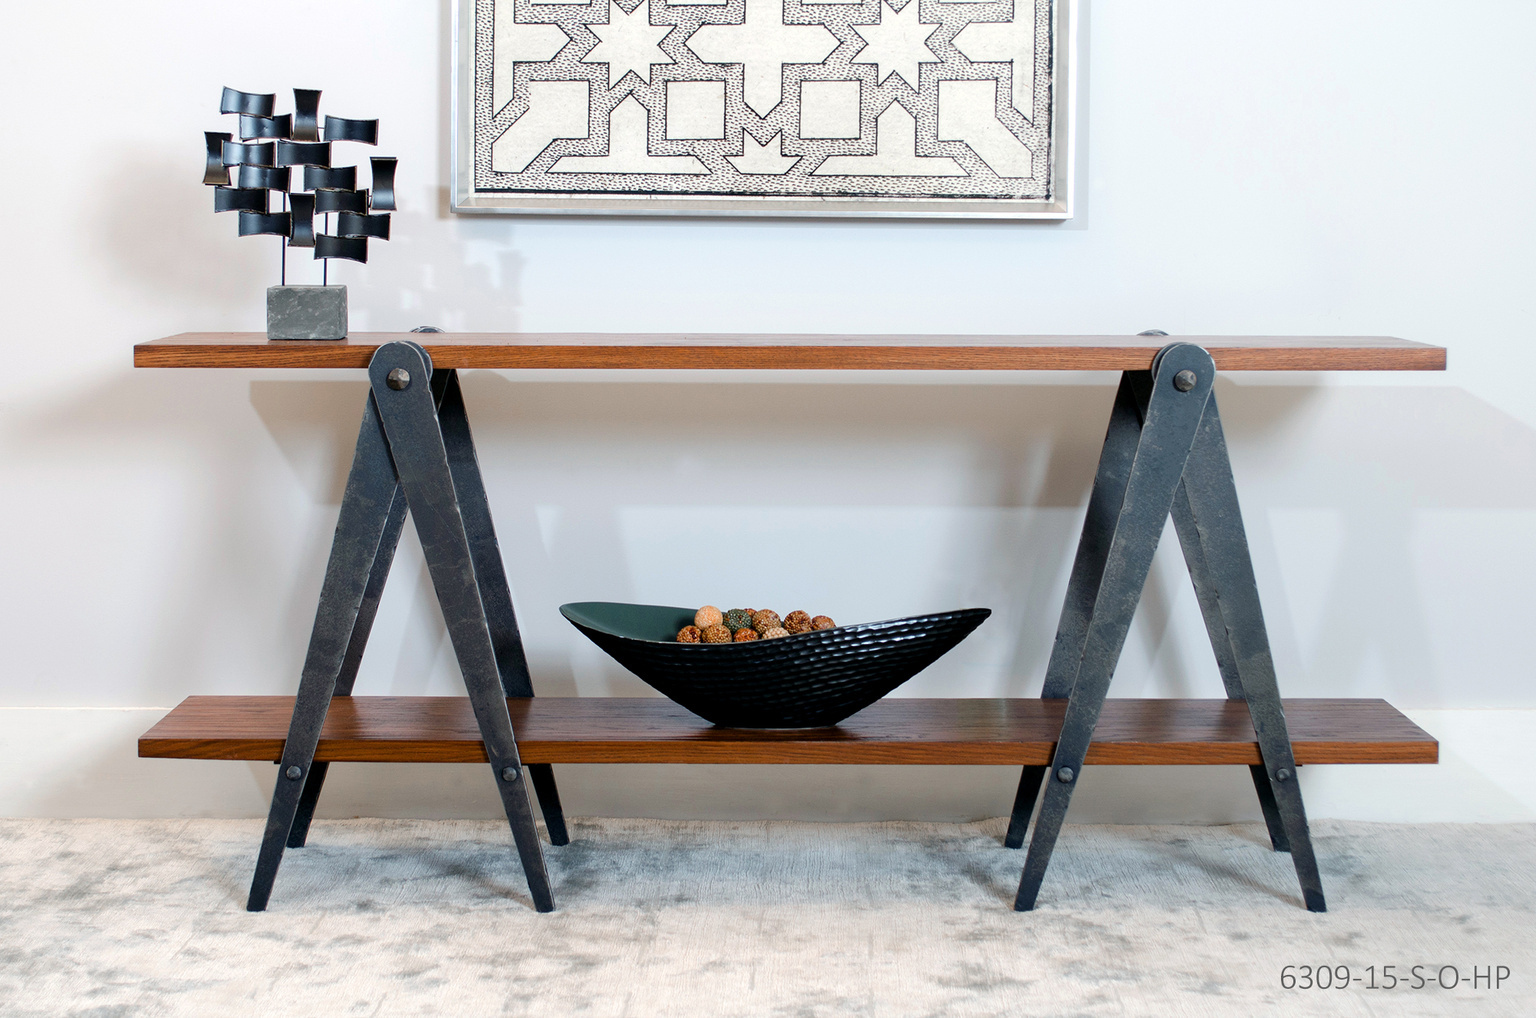 Fine Wood With Metal Furniture - A&S Home Interiors